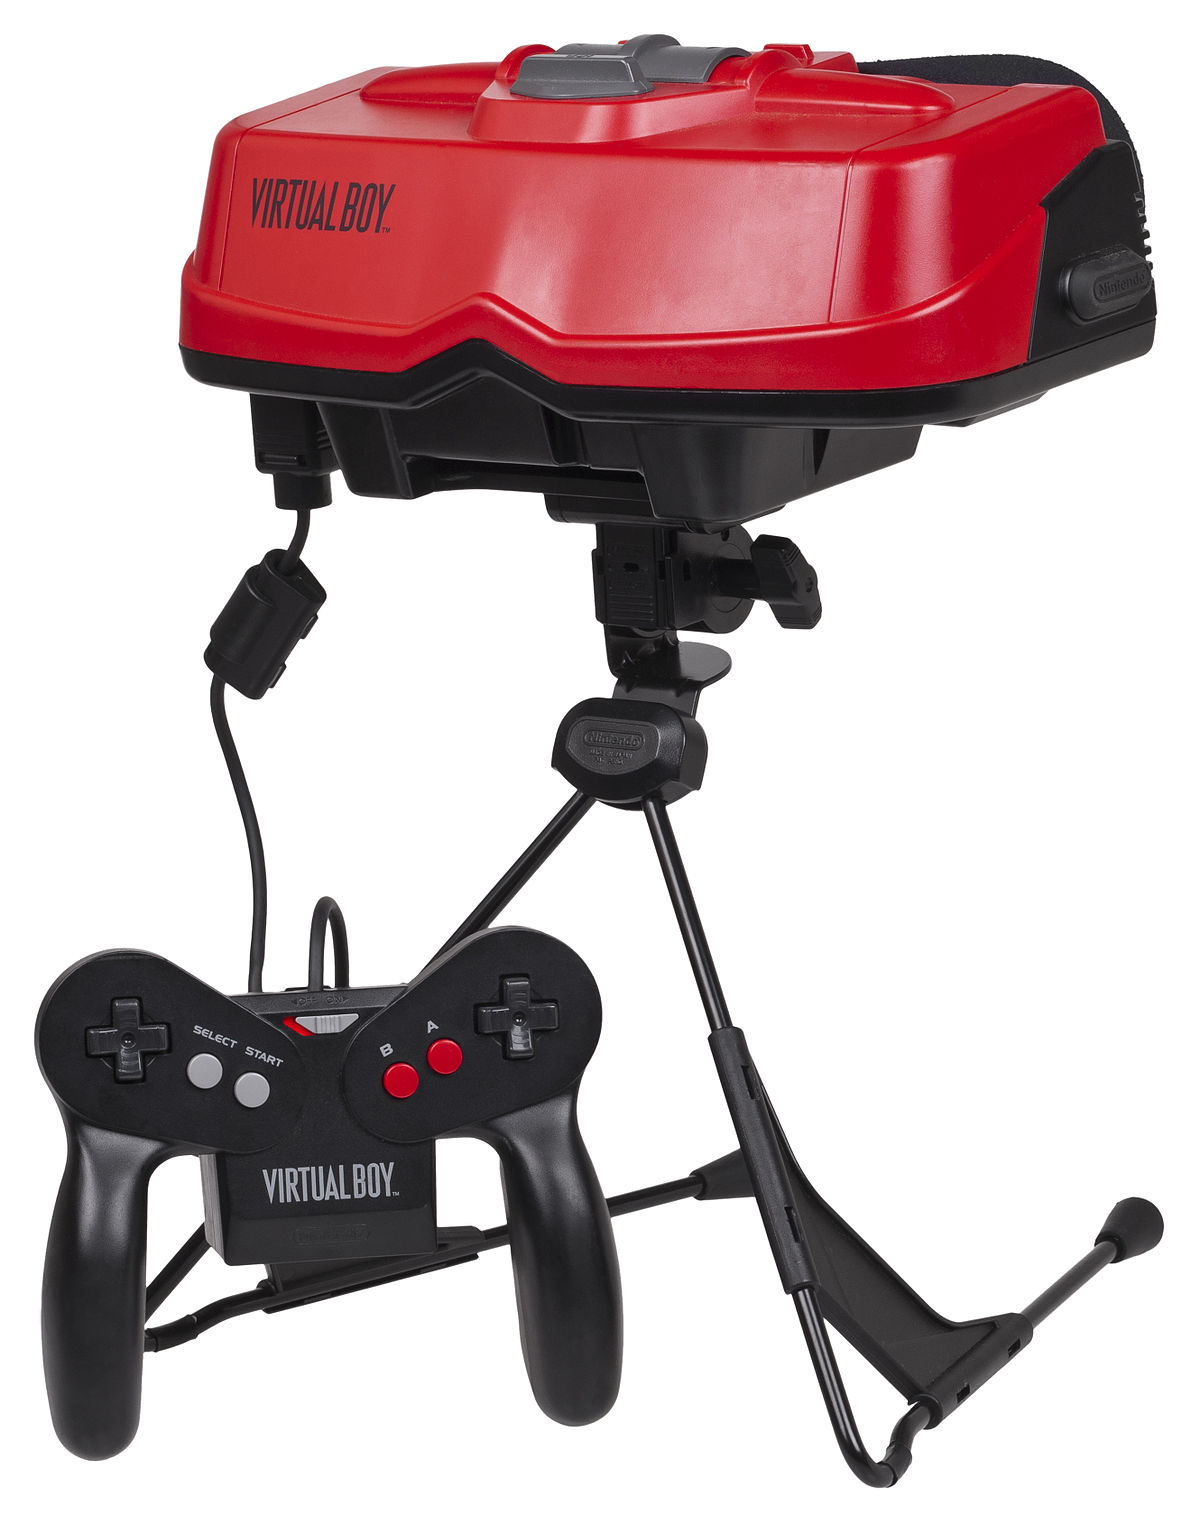 https://upload.wikimedia.org/wikipedia/commons/thumb/4/44/Virtual-Boy-Set.jpg/1200px-Virtual-Boy-Set.jpg